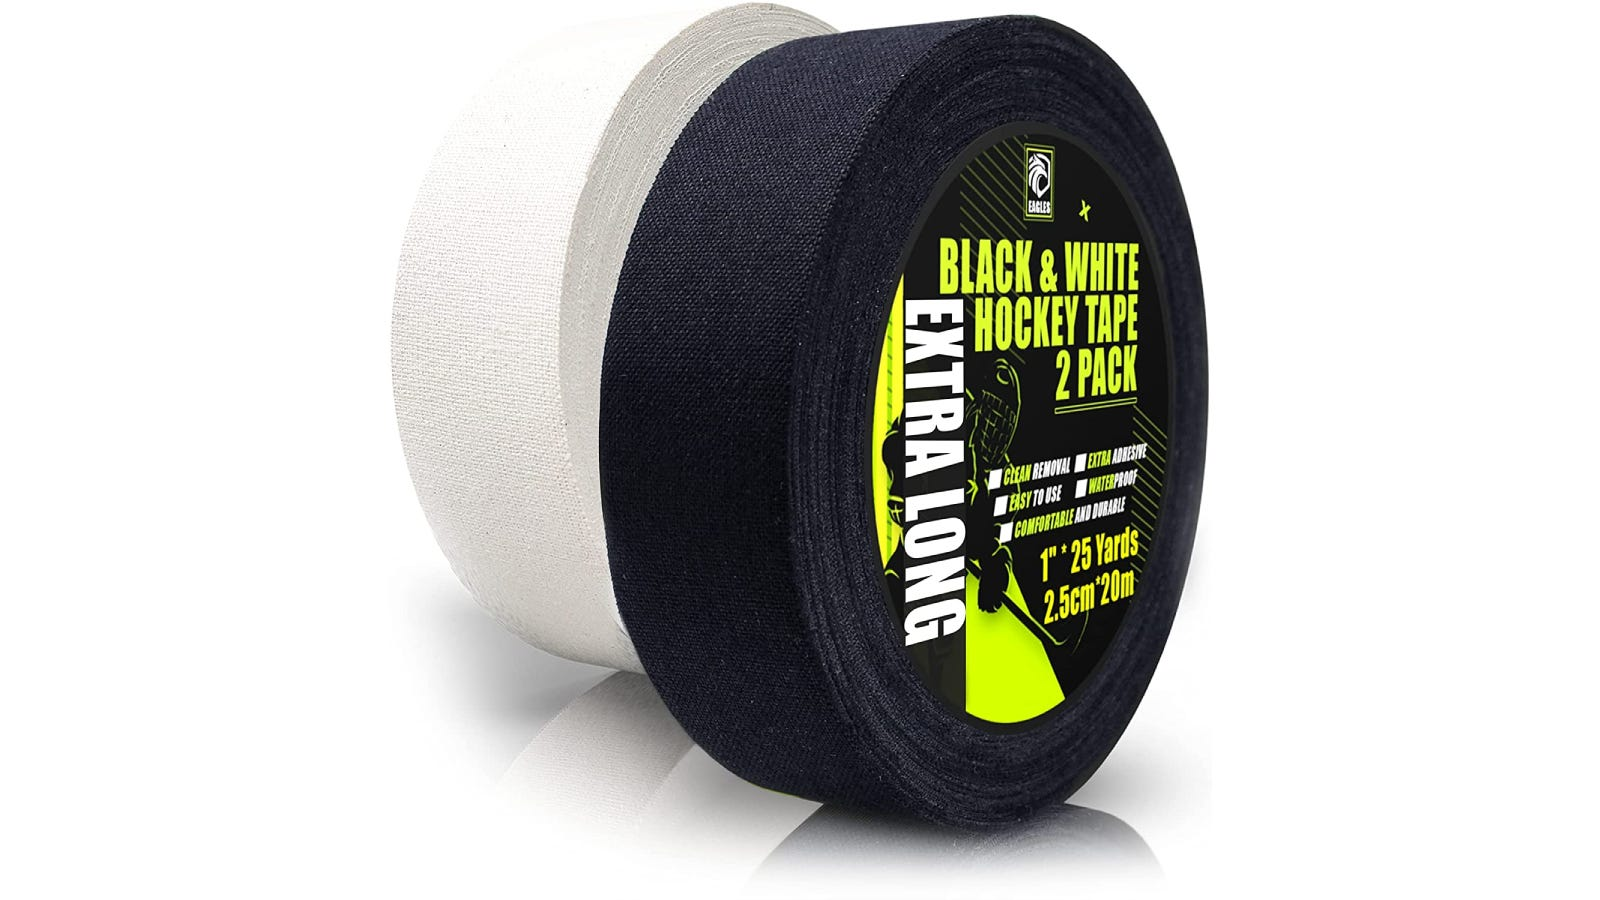 A black roll of hockey tape with green packaging sits in front of a white roll of tape.